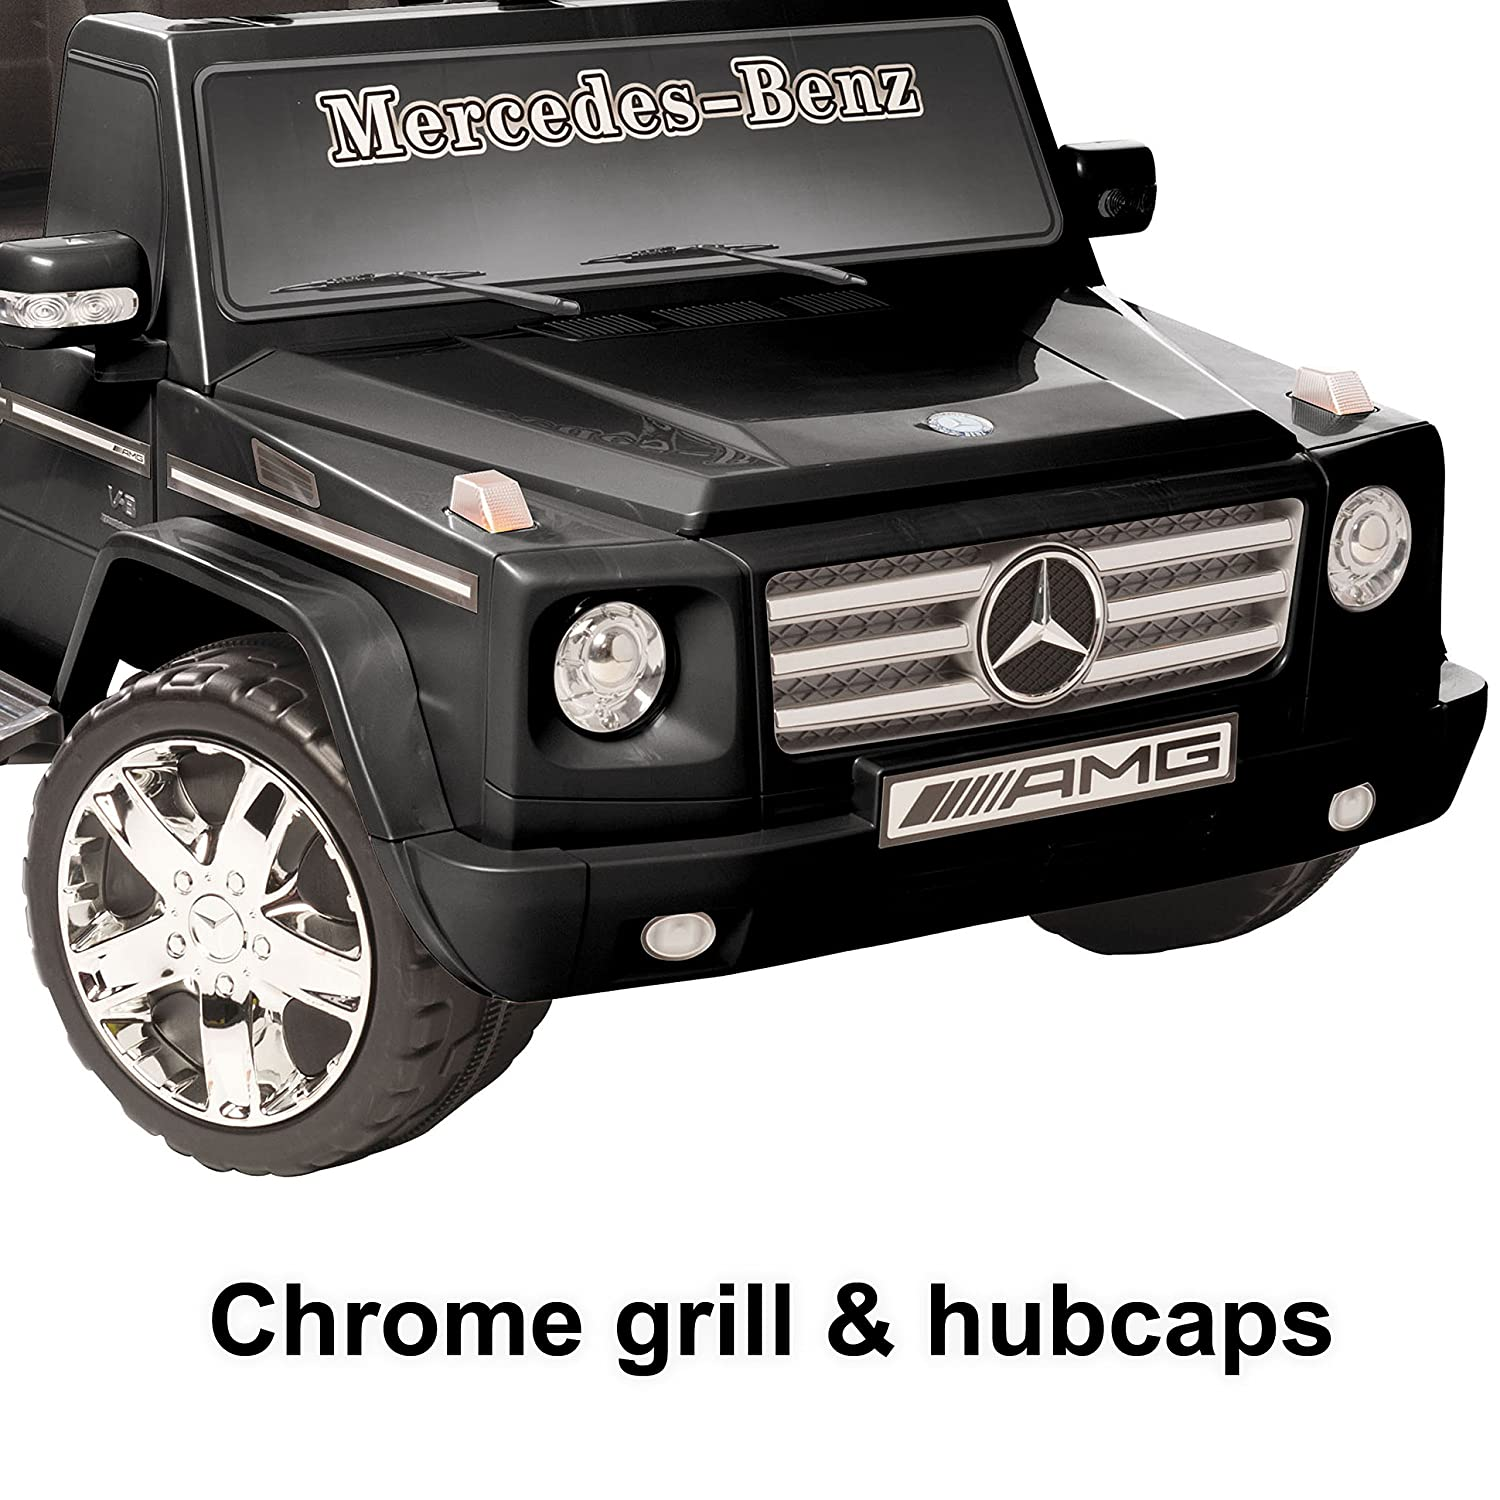 cars and g amg debuts mercedes jeep speed with benz top news horsepower class reviews